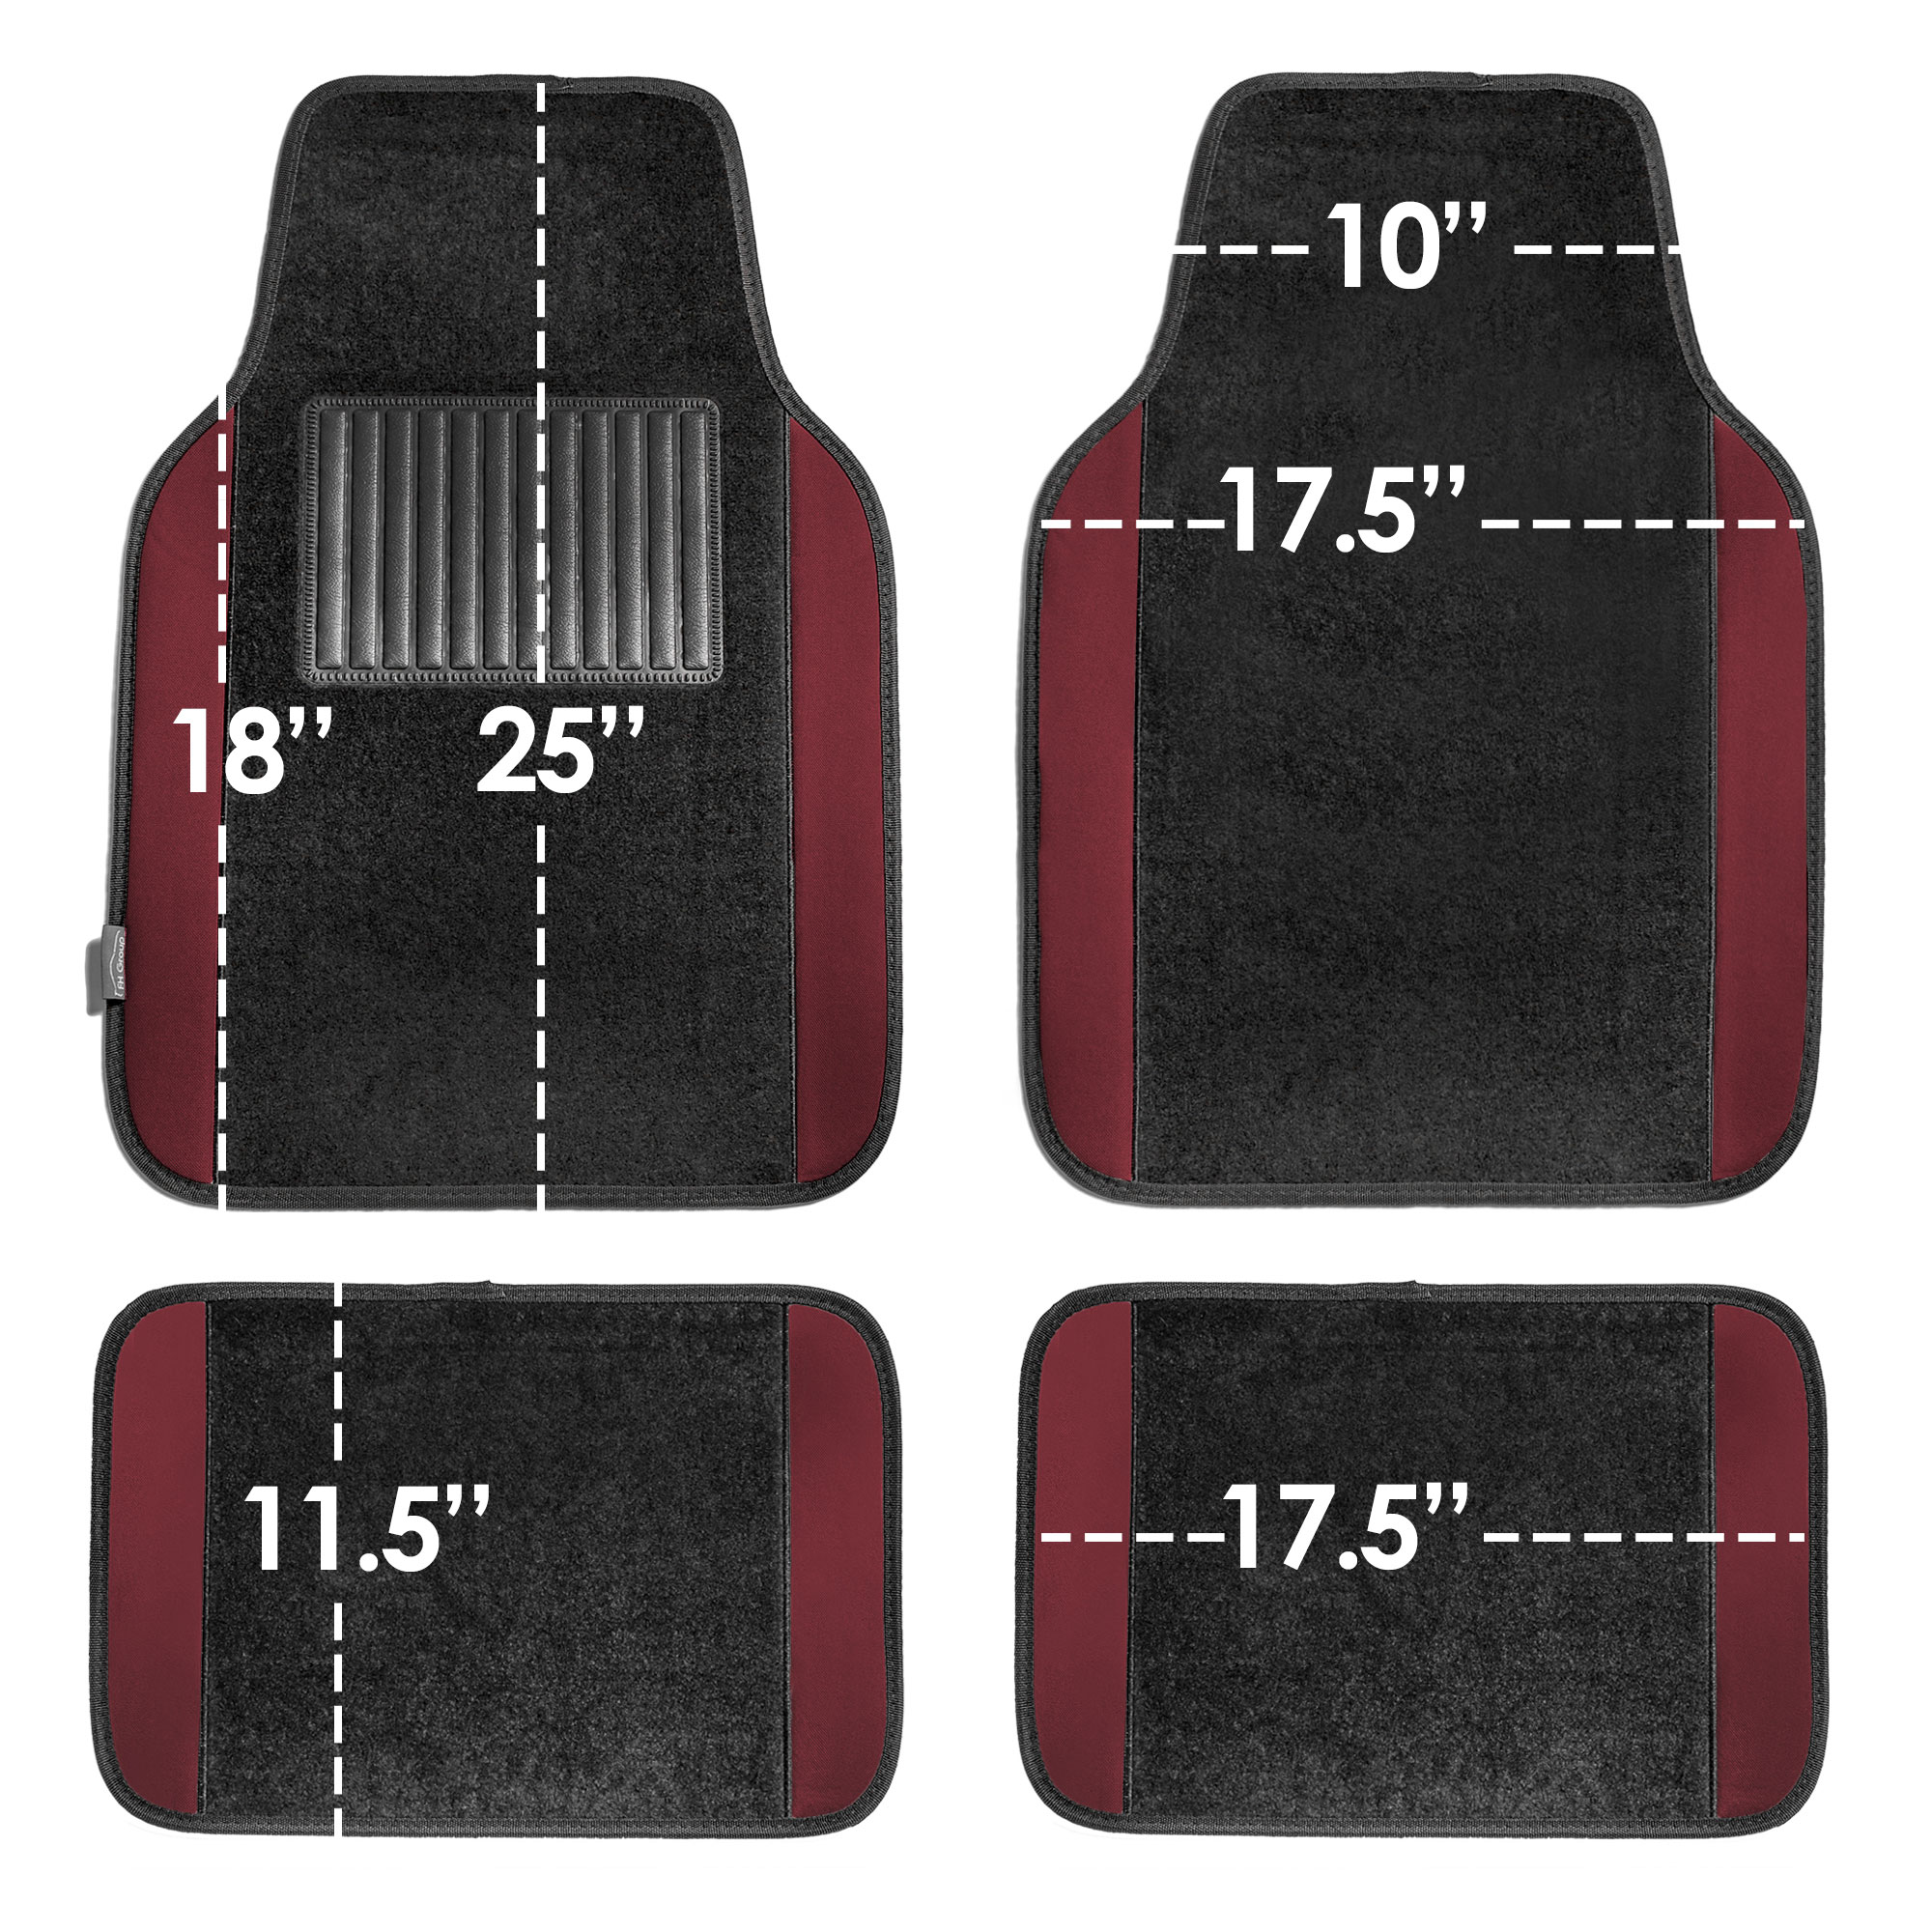 4pcs-Universal-Carpet-Floor-Mats-for-Car-SUV-Van-10-Color-Options-Full-Set thumbnail 19